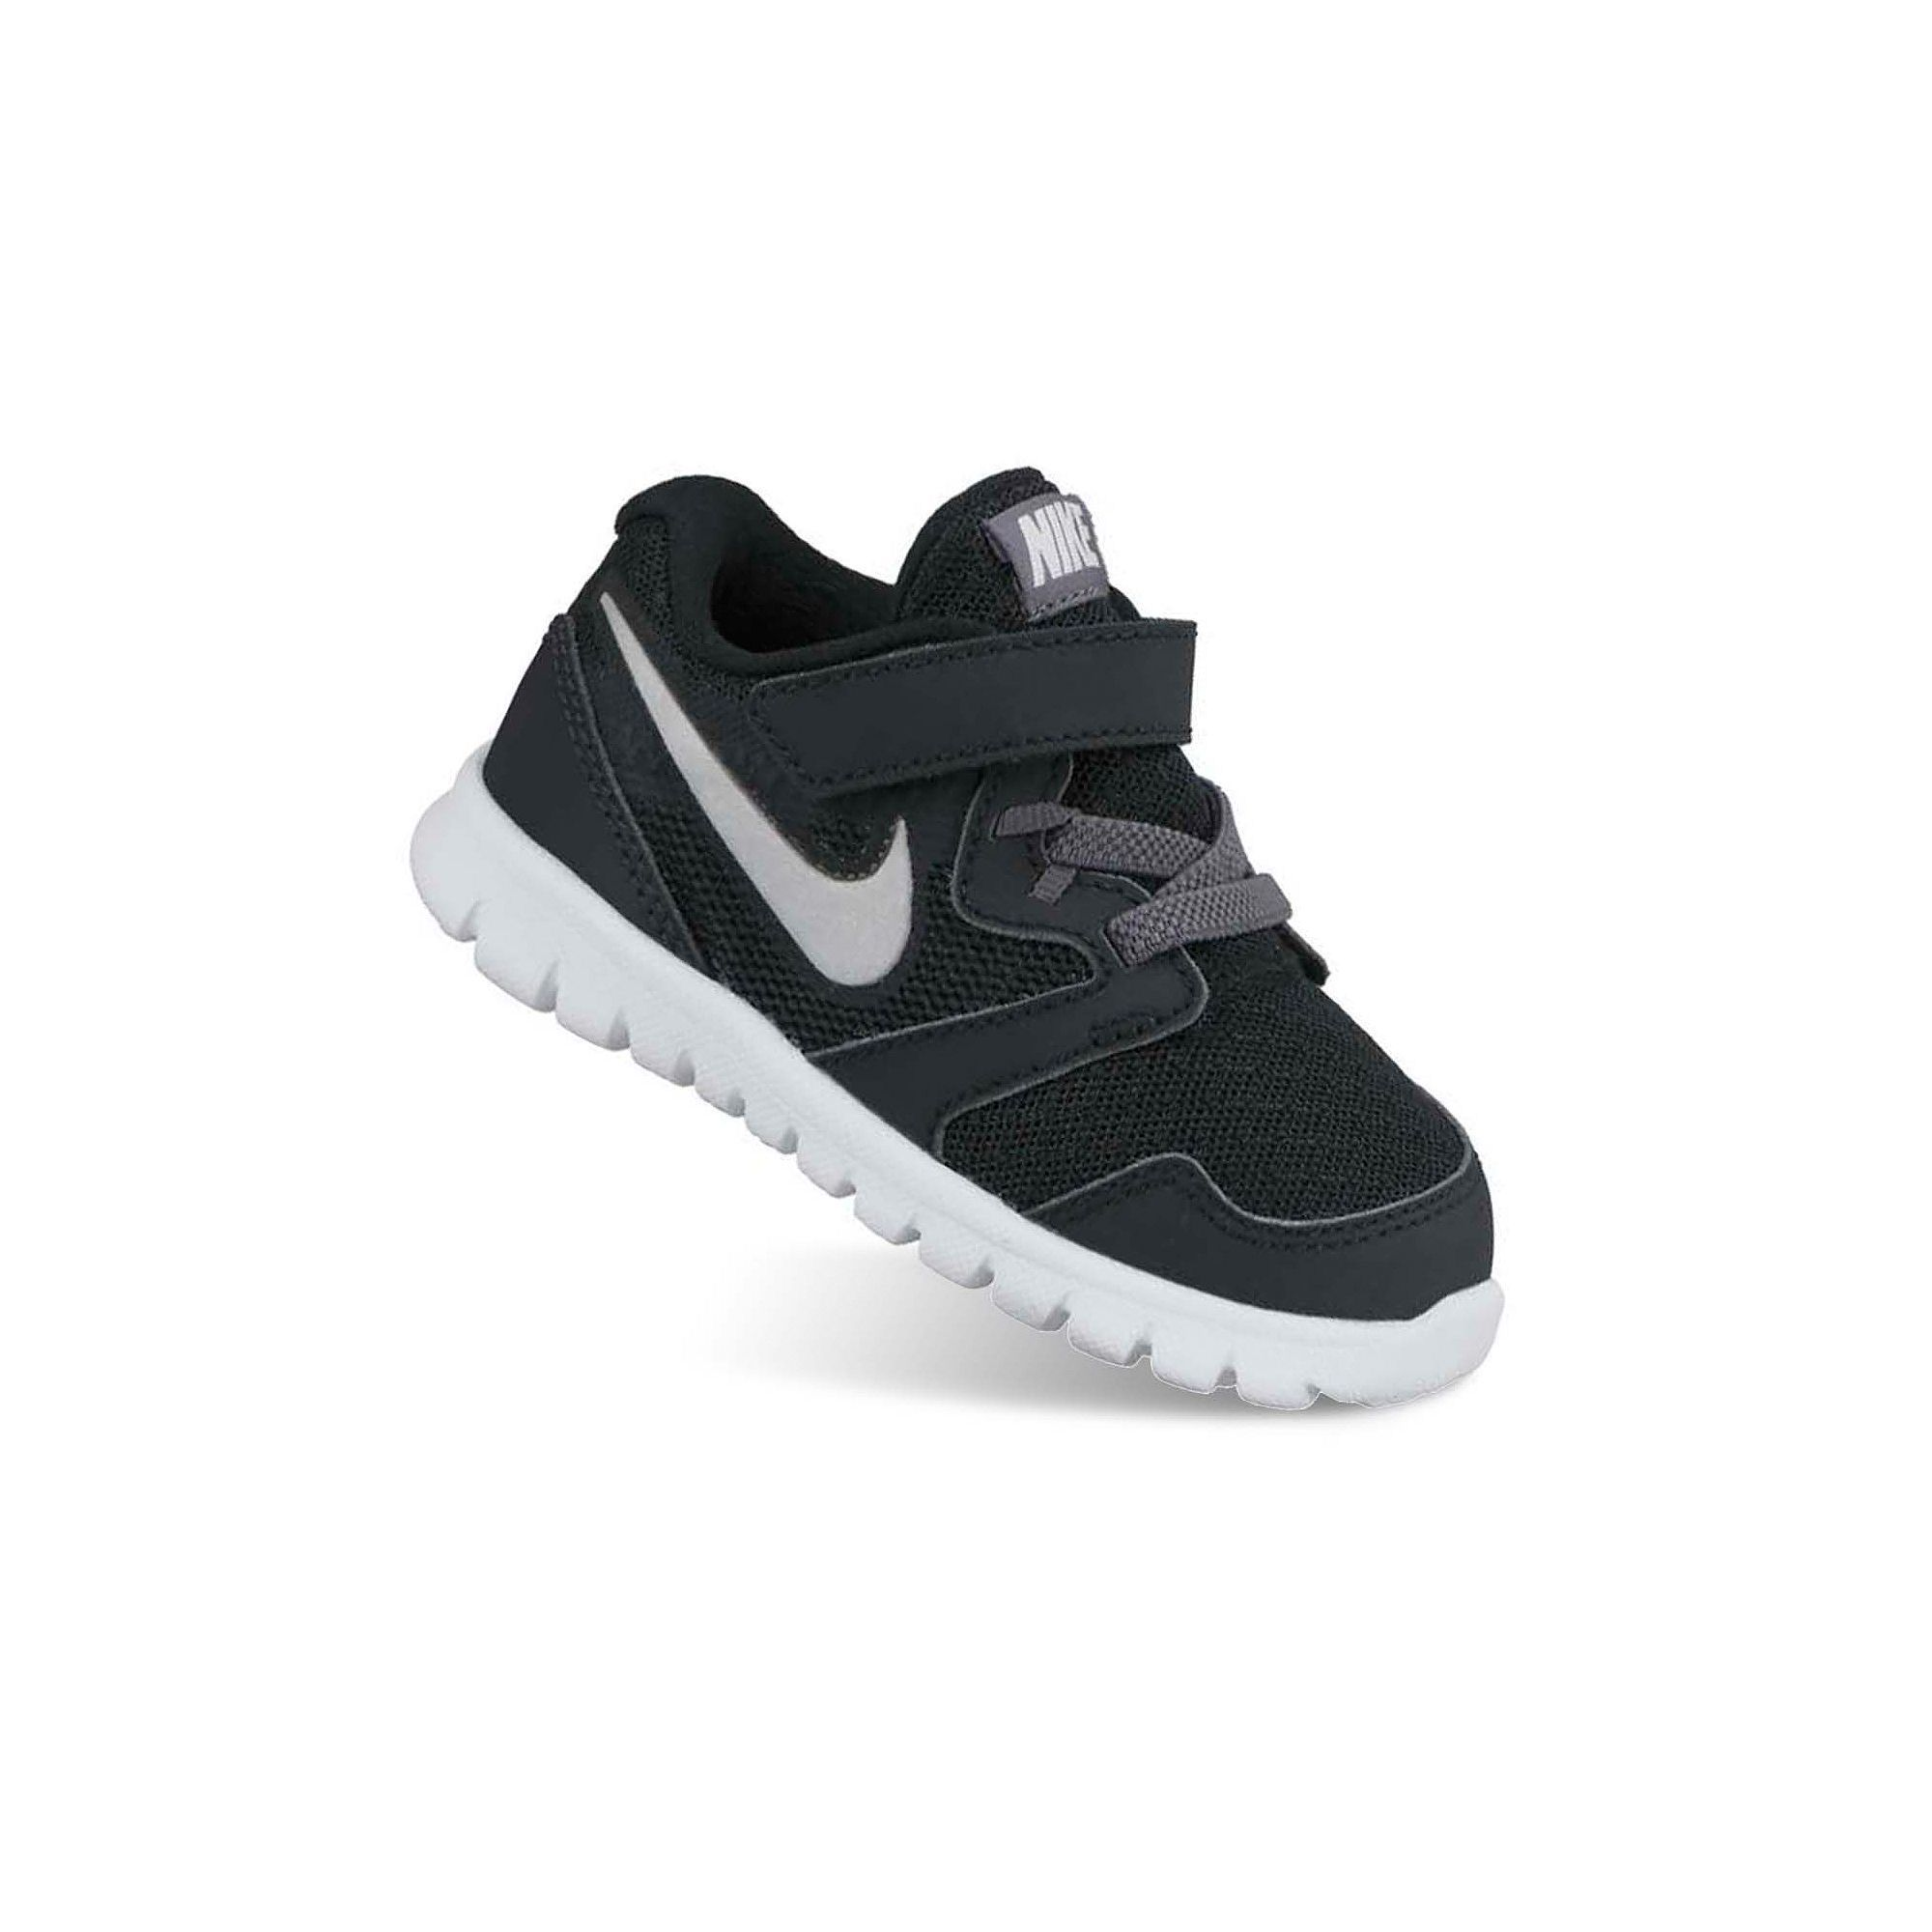 0f4a02f96717 Nike Toddler Boys  Flex Experience Running Shoes